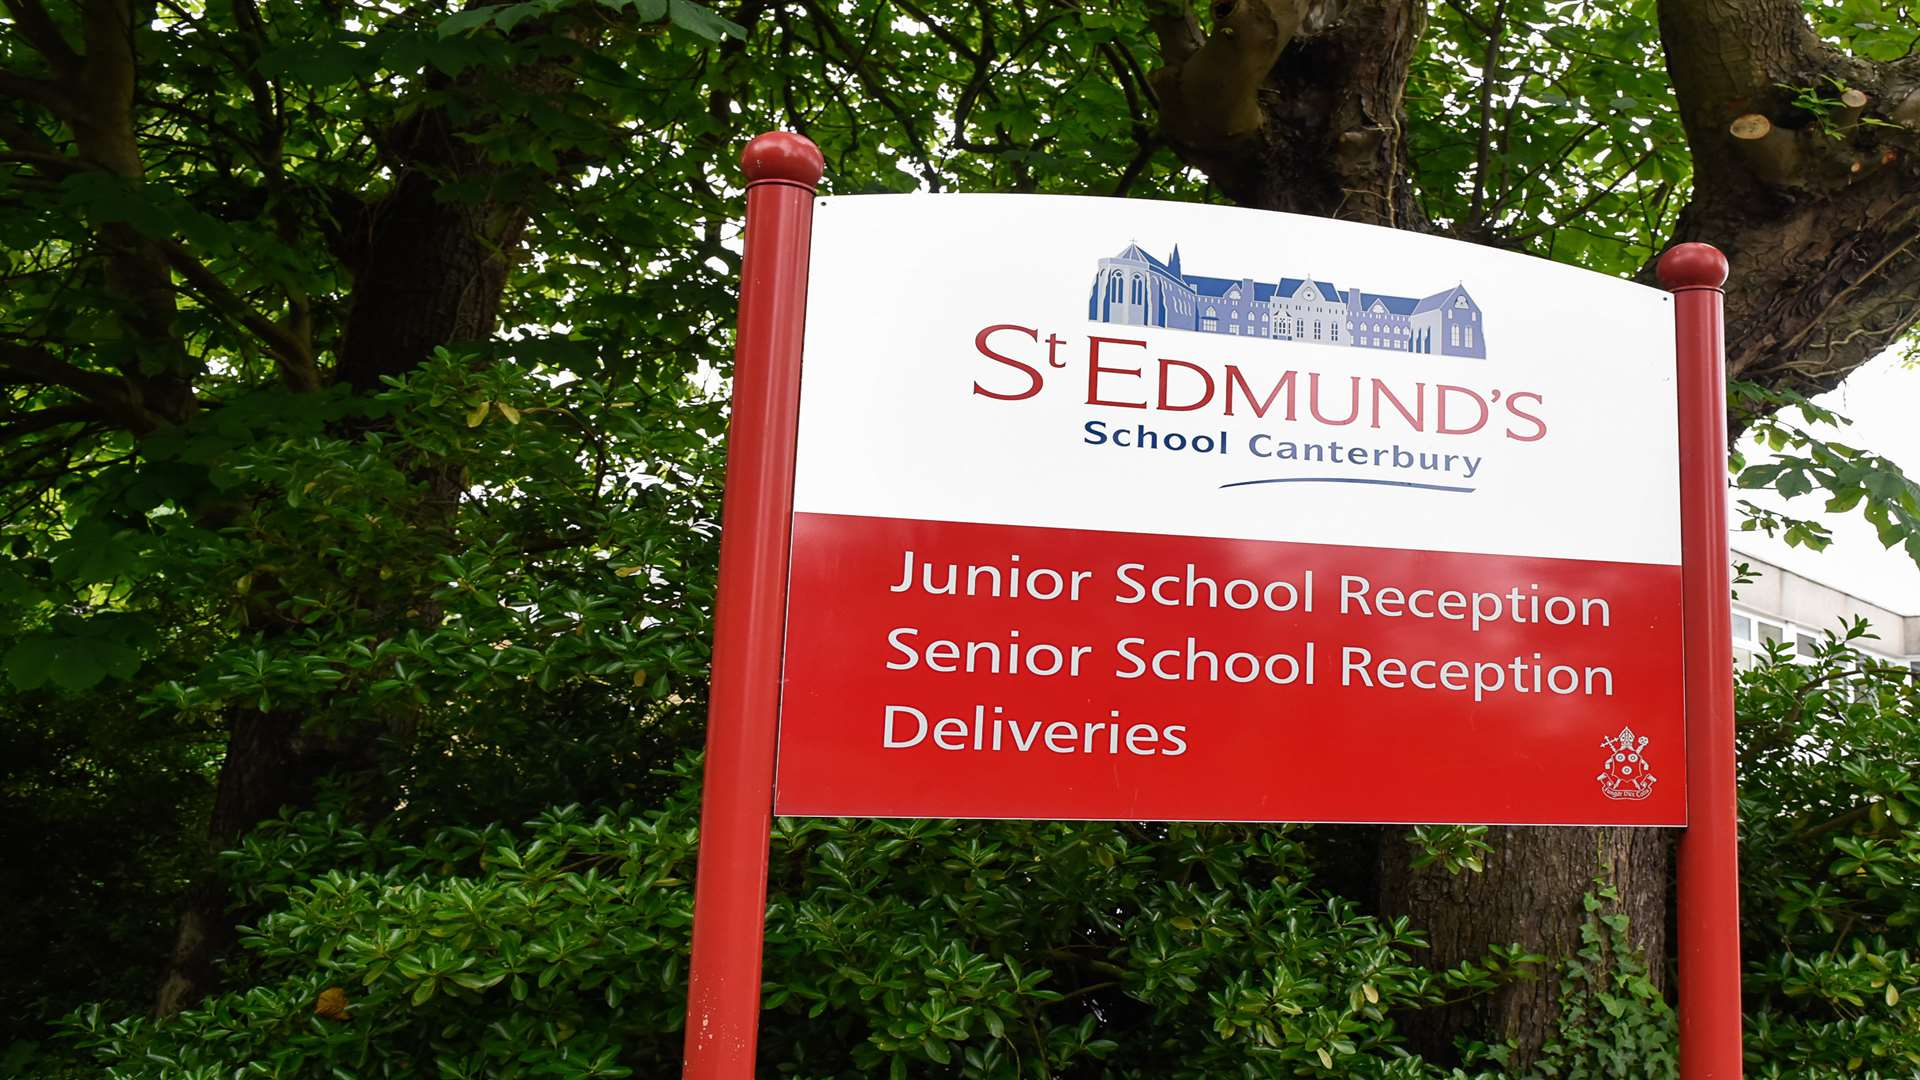 The sign outside St Edmund's School